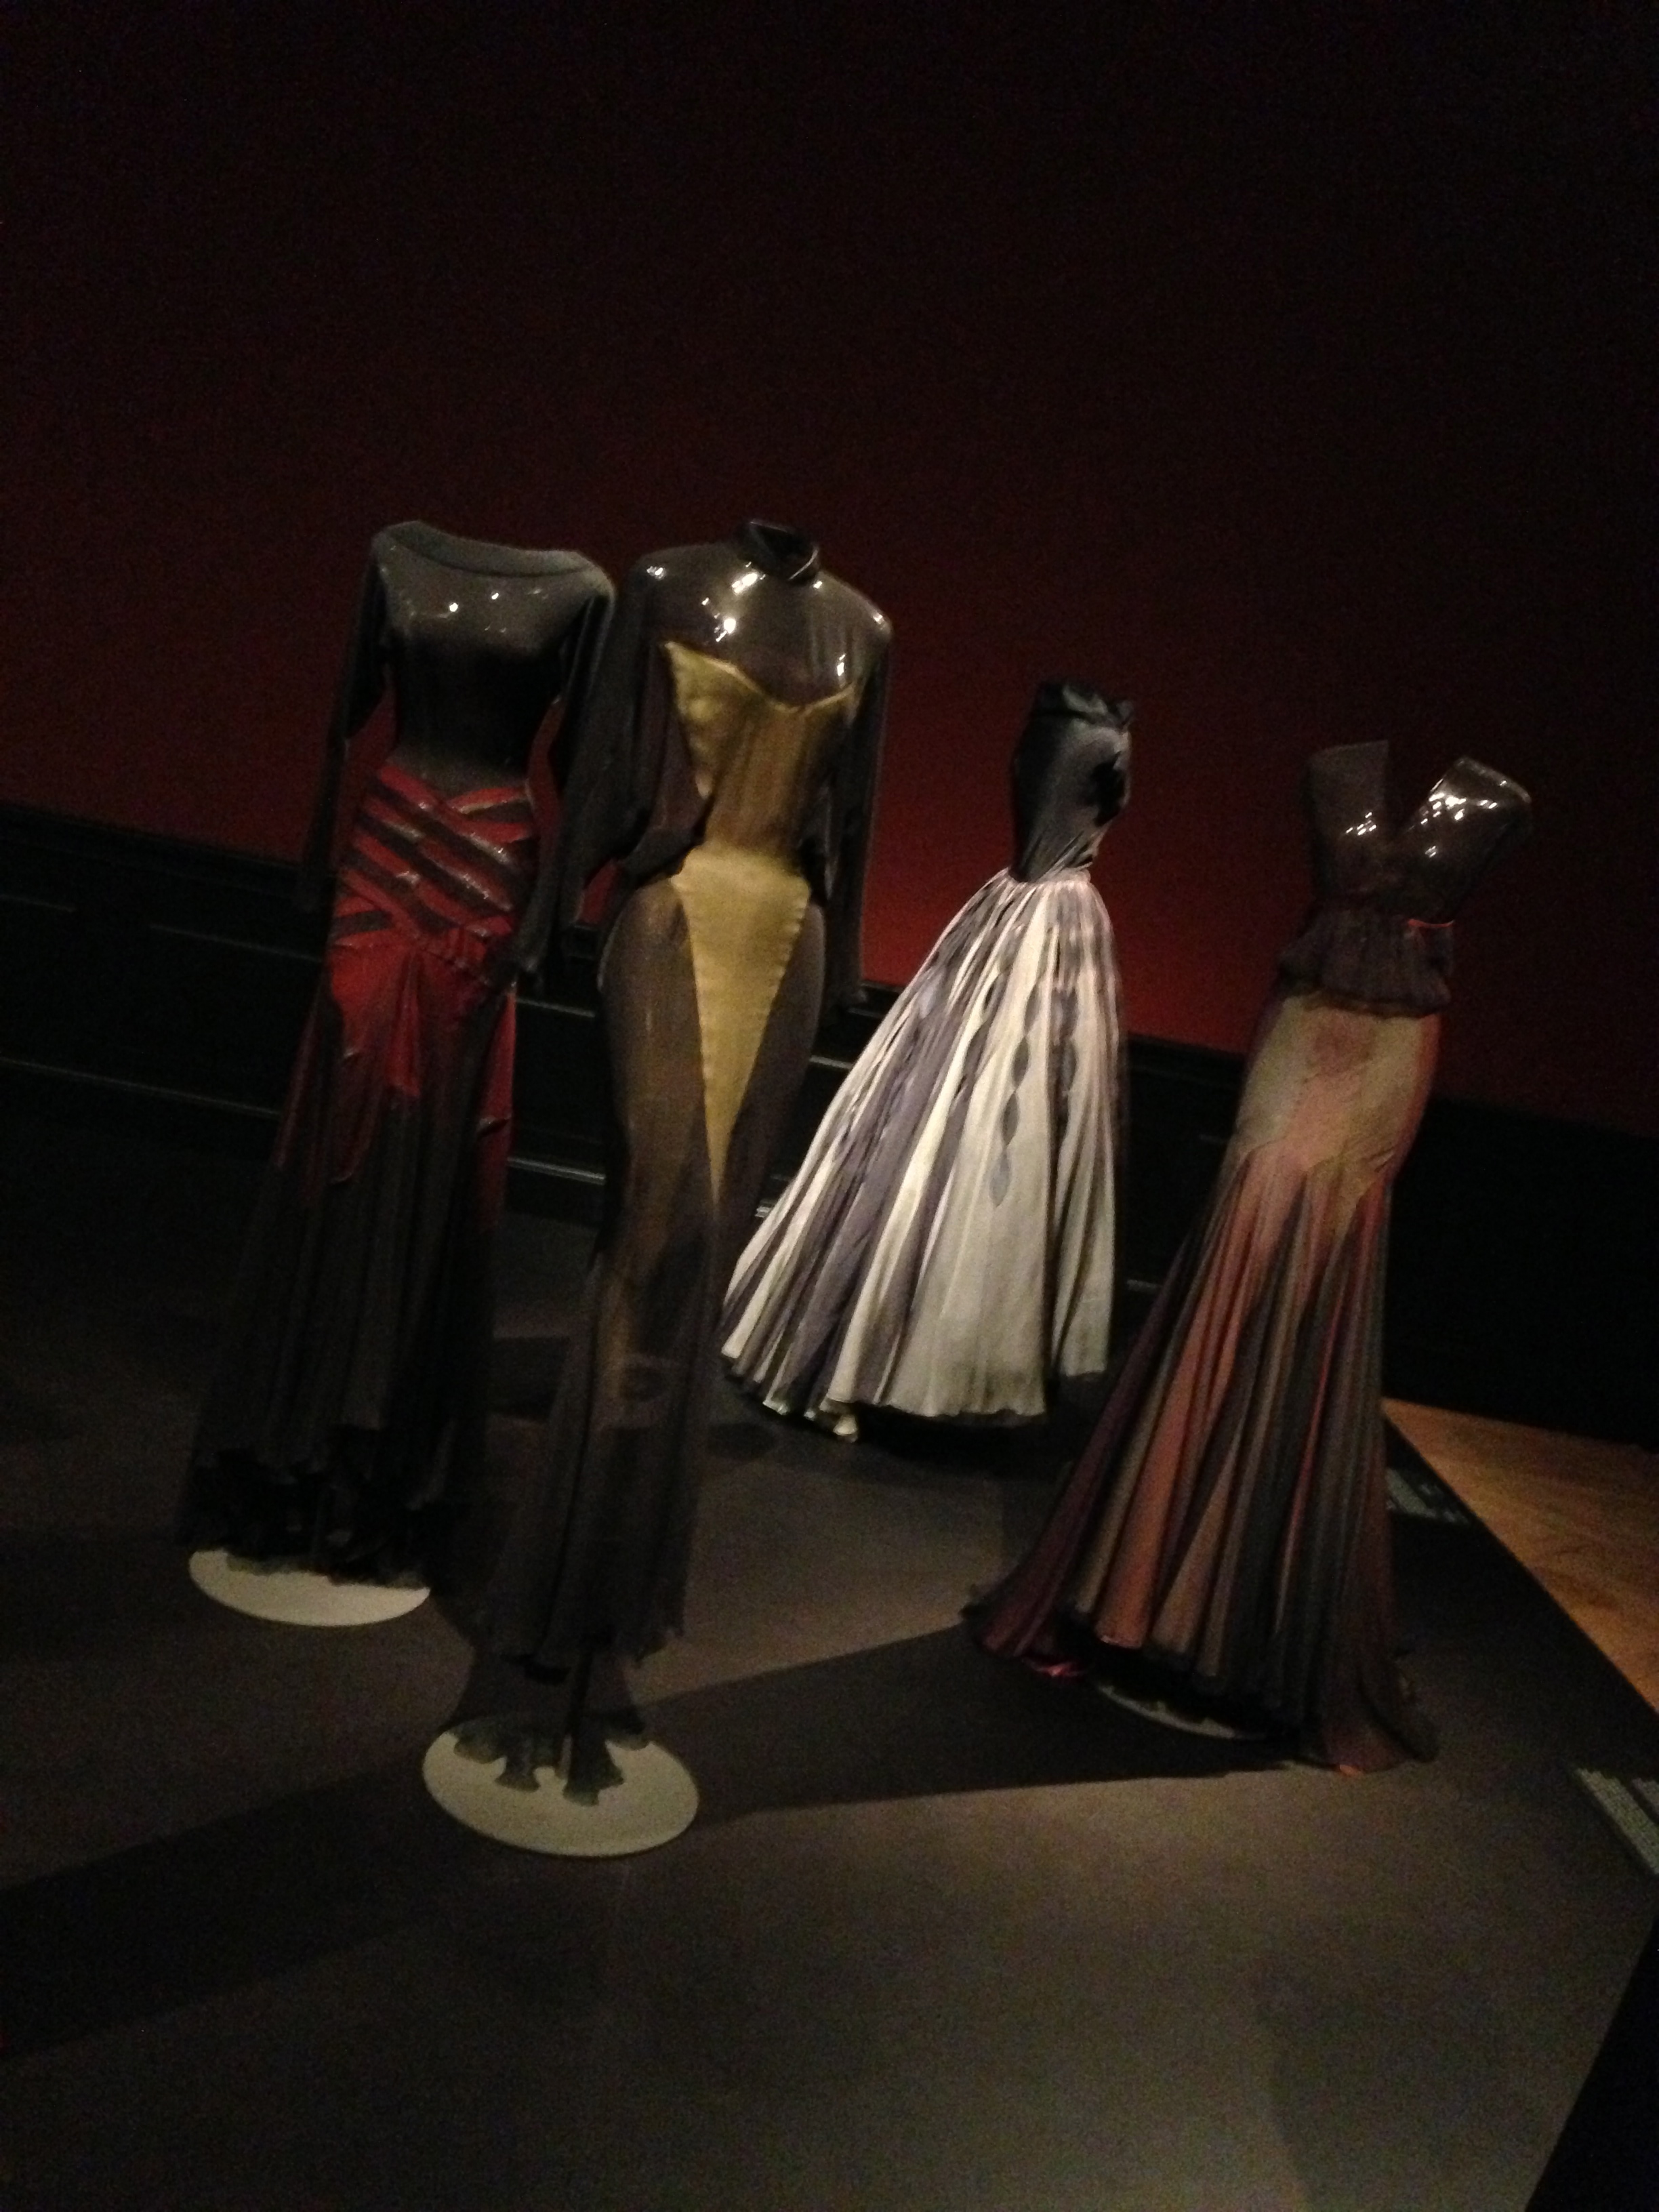 Naomi Cambell, Alaïa exhibition in Paris 2013